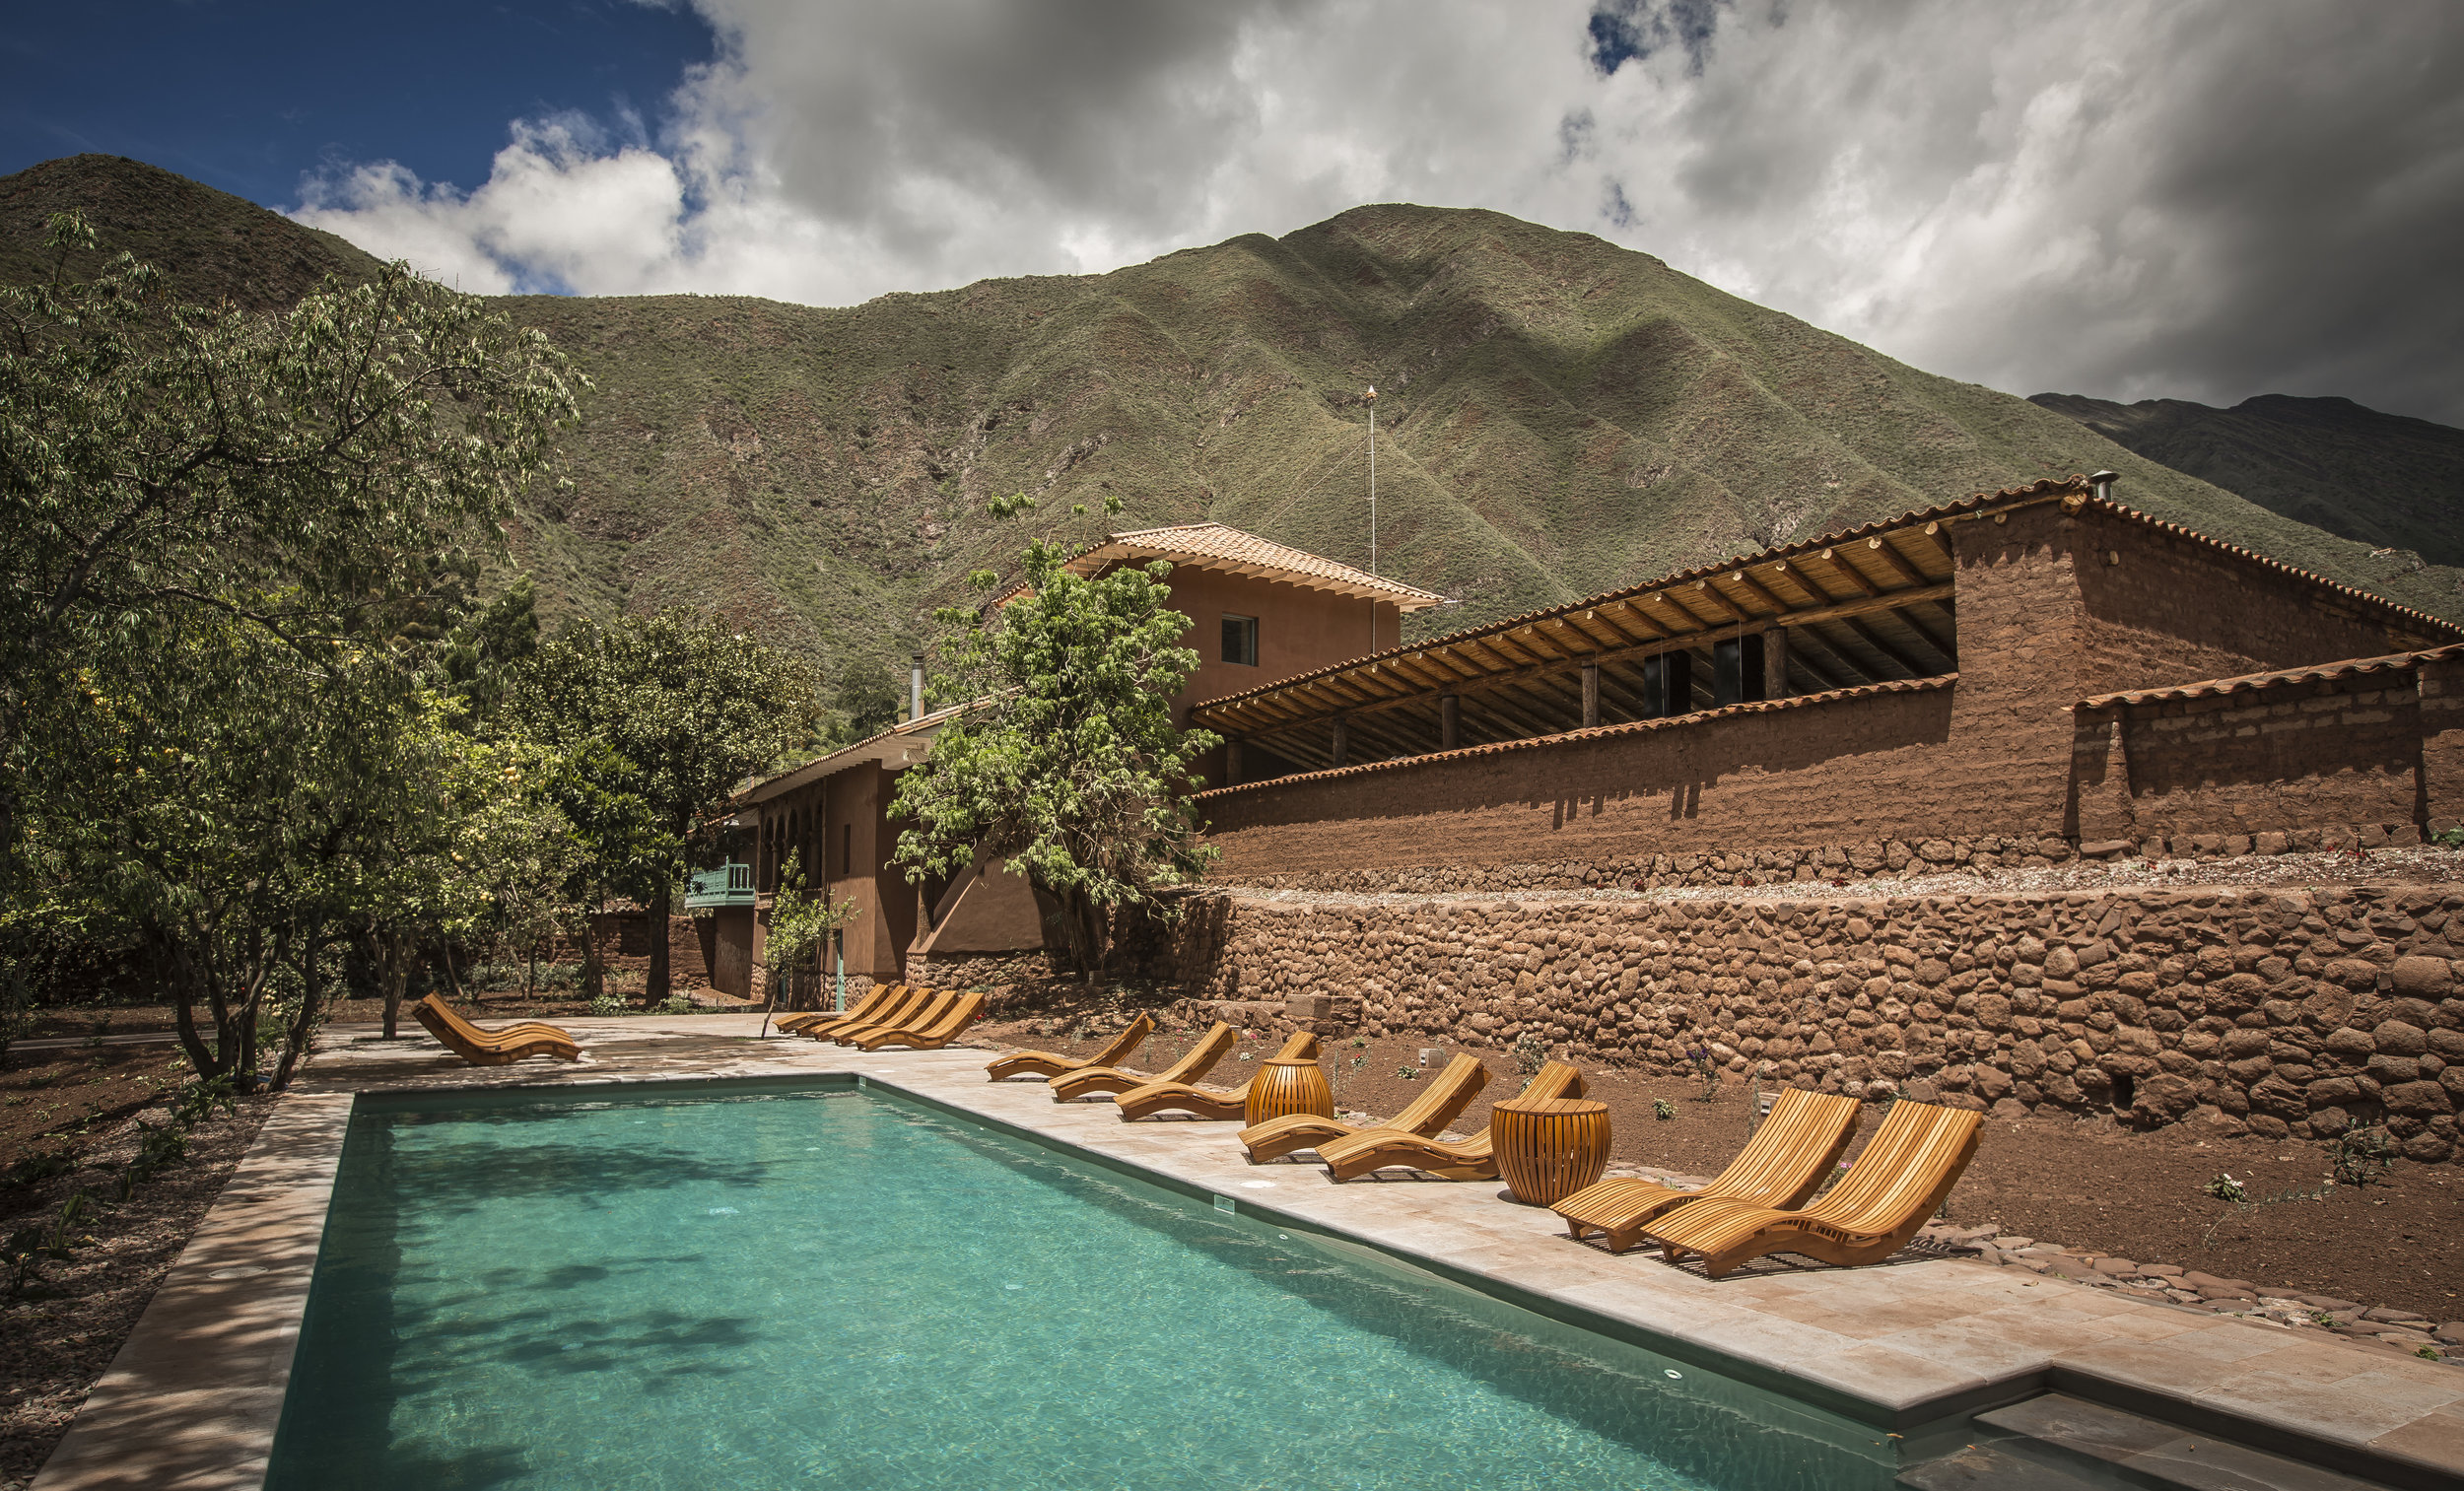 Pool at explora Sacred Valley, Peru